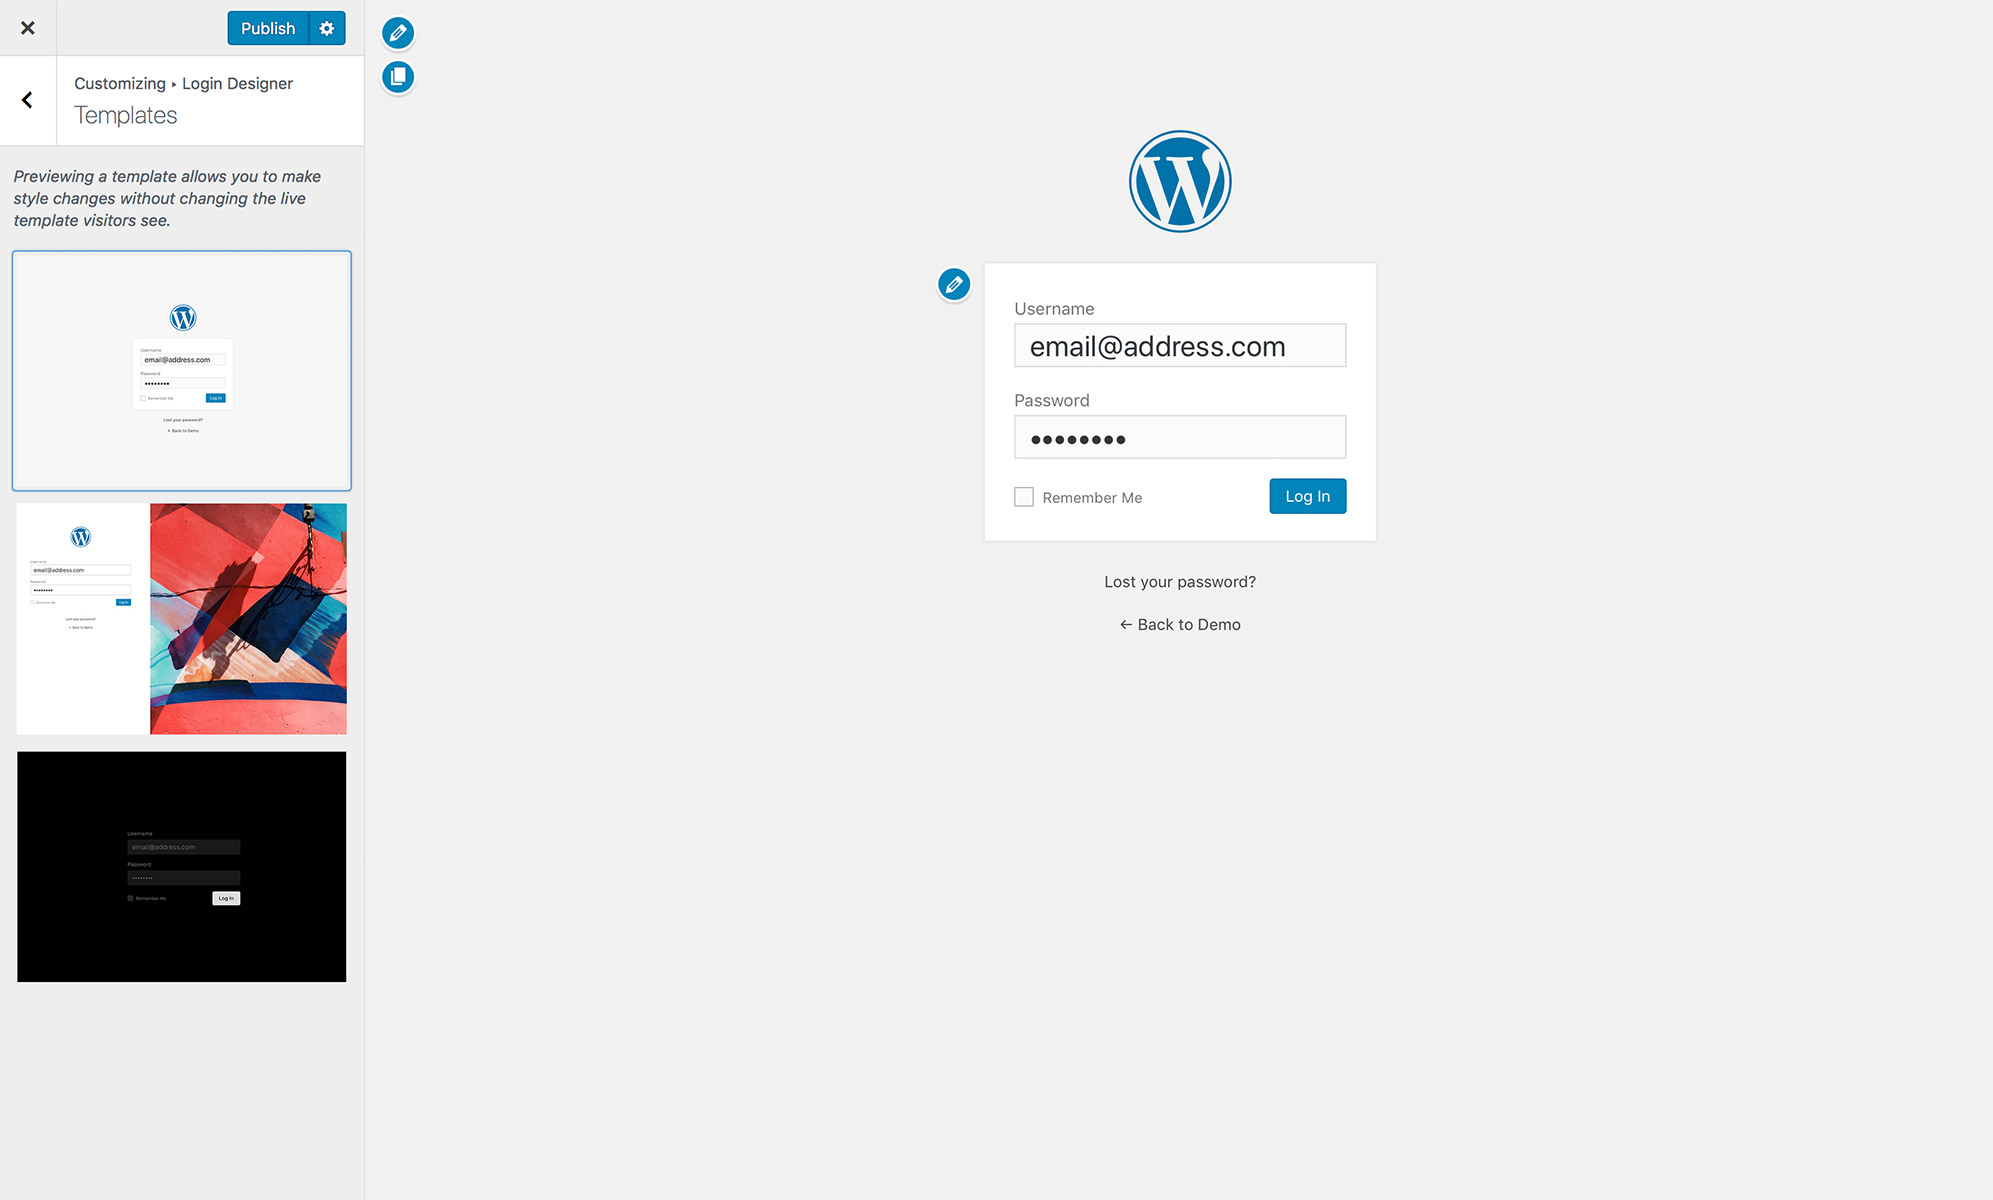 custom login page customizer login designer wordpress org